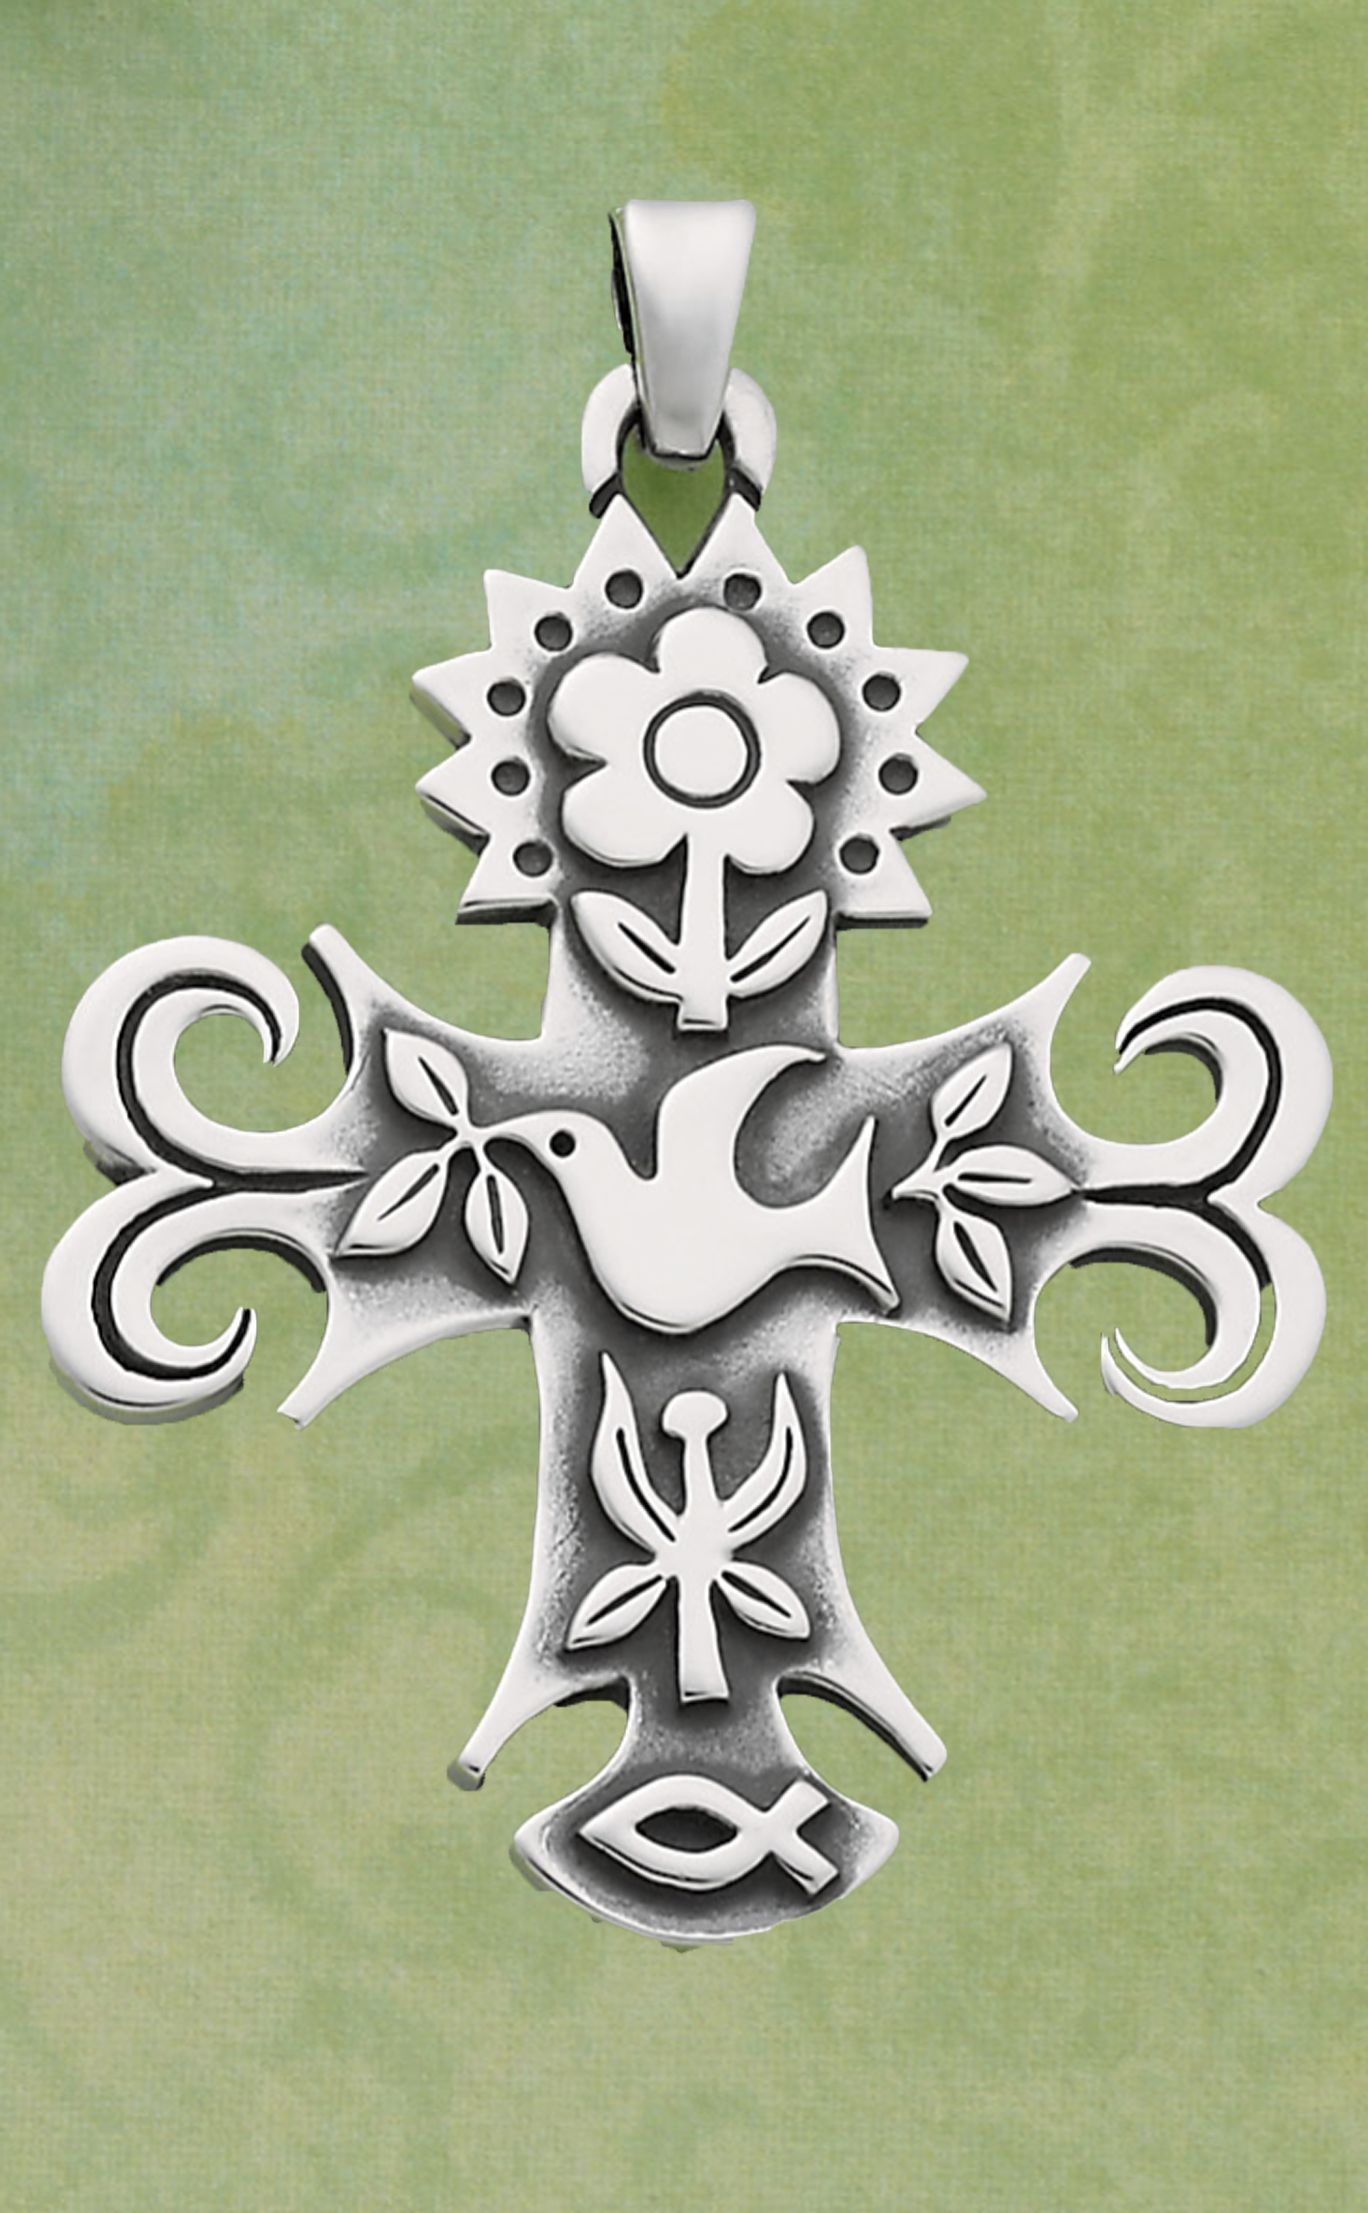 La primavera cross by james avery jewelry i love the beautiful la primavera cross i love the beautiful details every symbol has special meaning this necklace will be a treasured piece that i shall wear often aloadofball Gallery